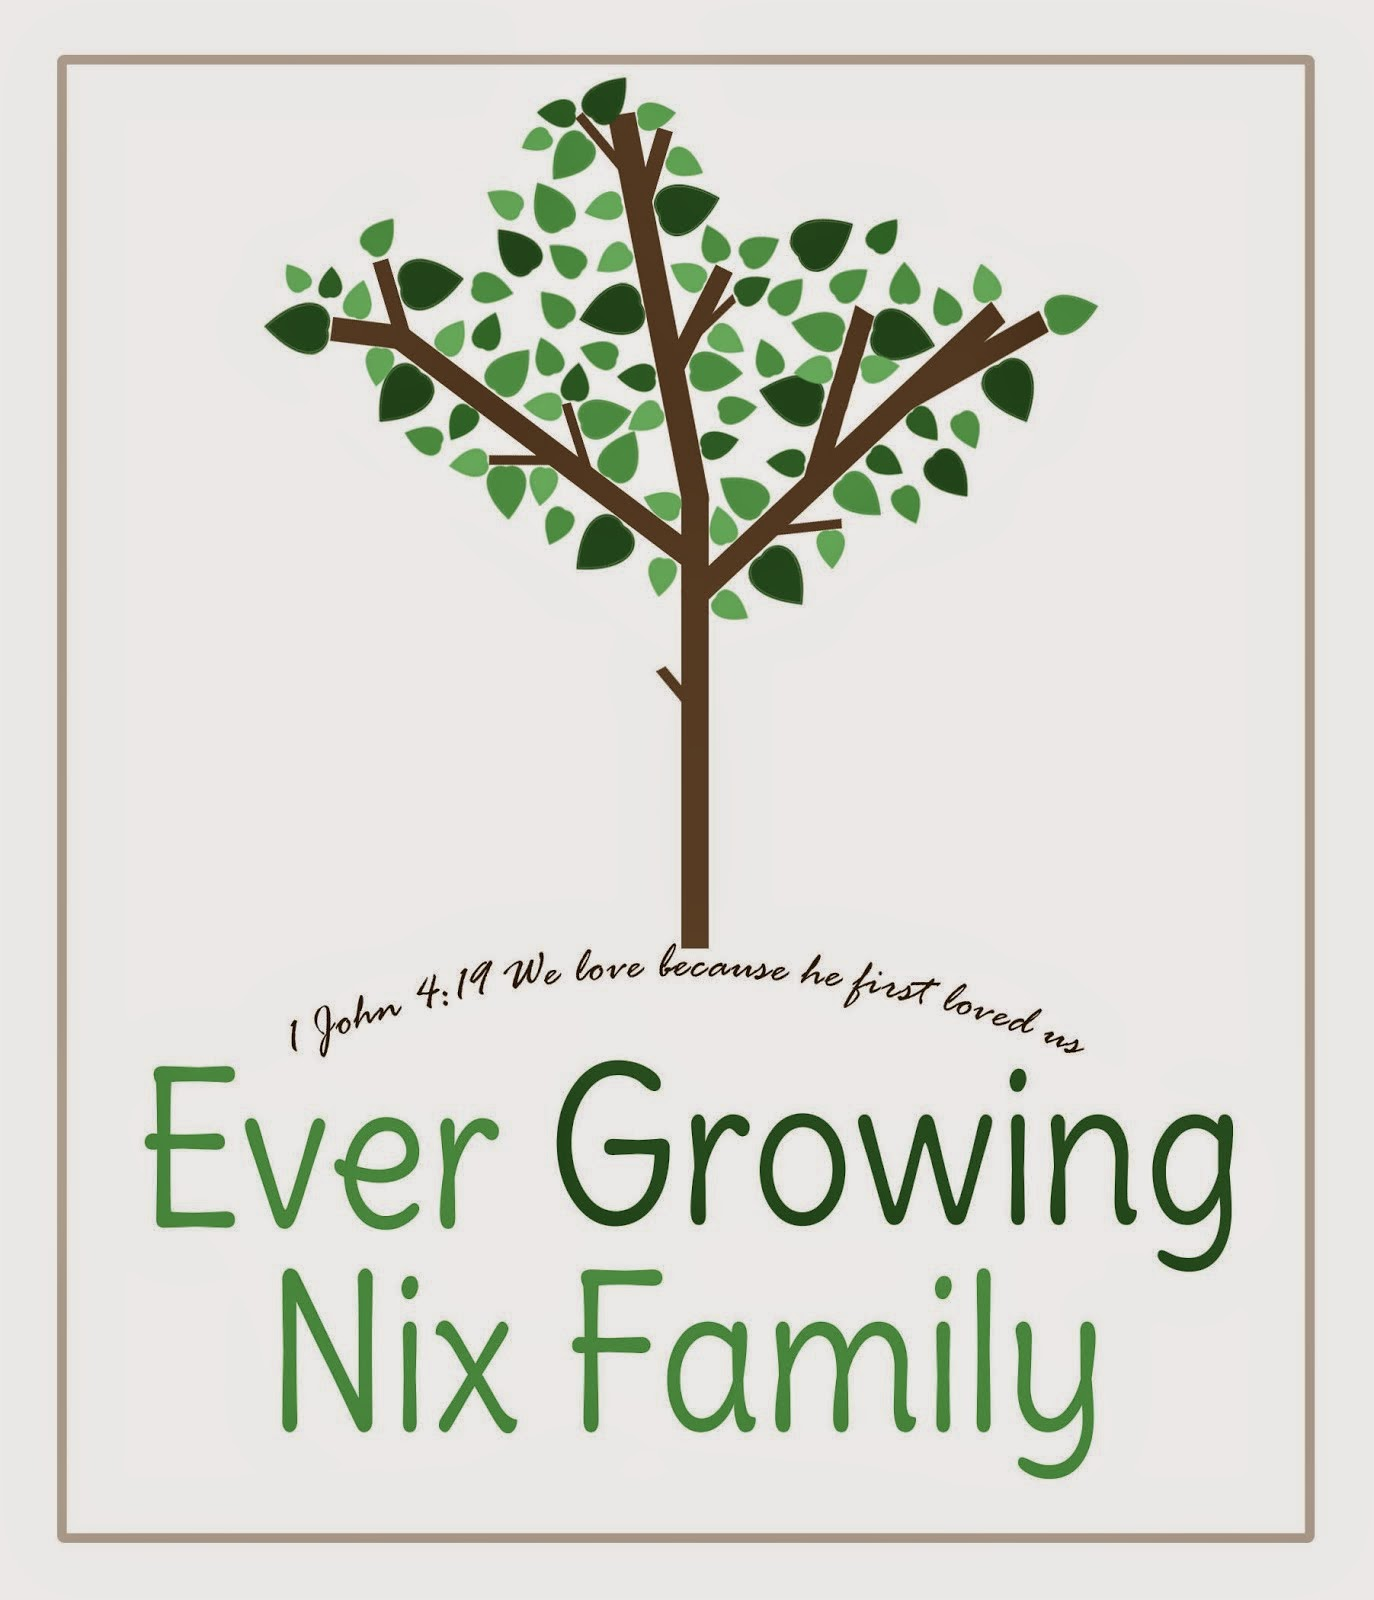 Ever Growing Nix Family